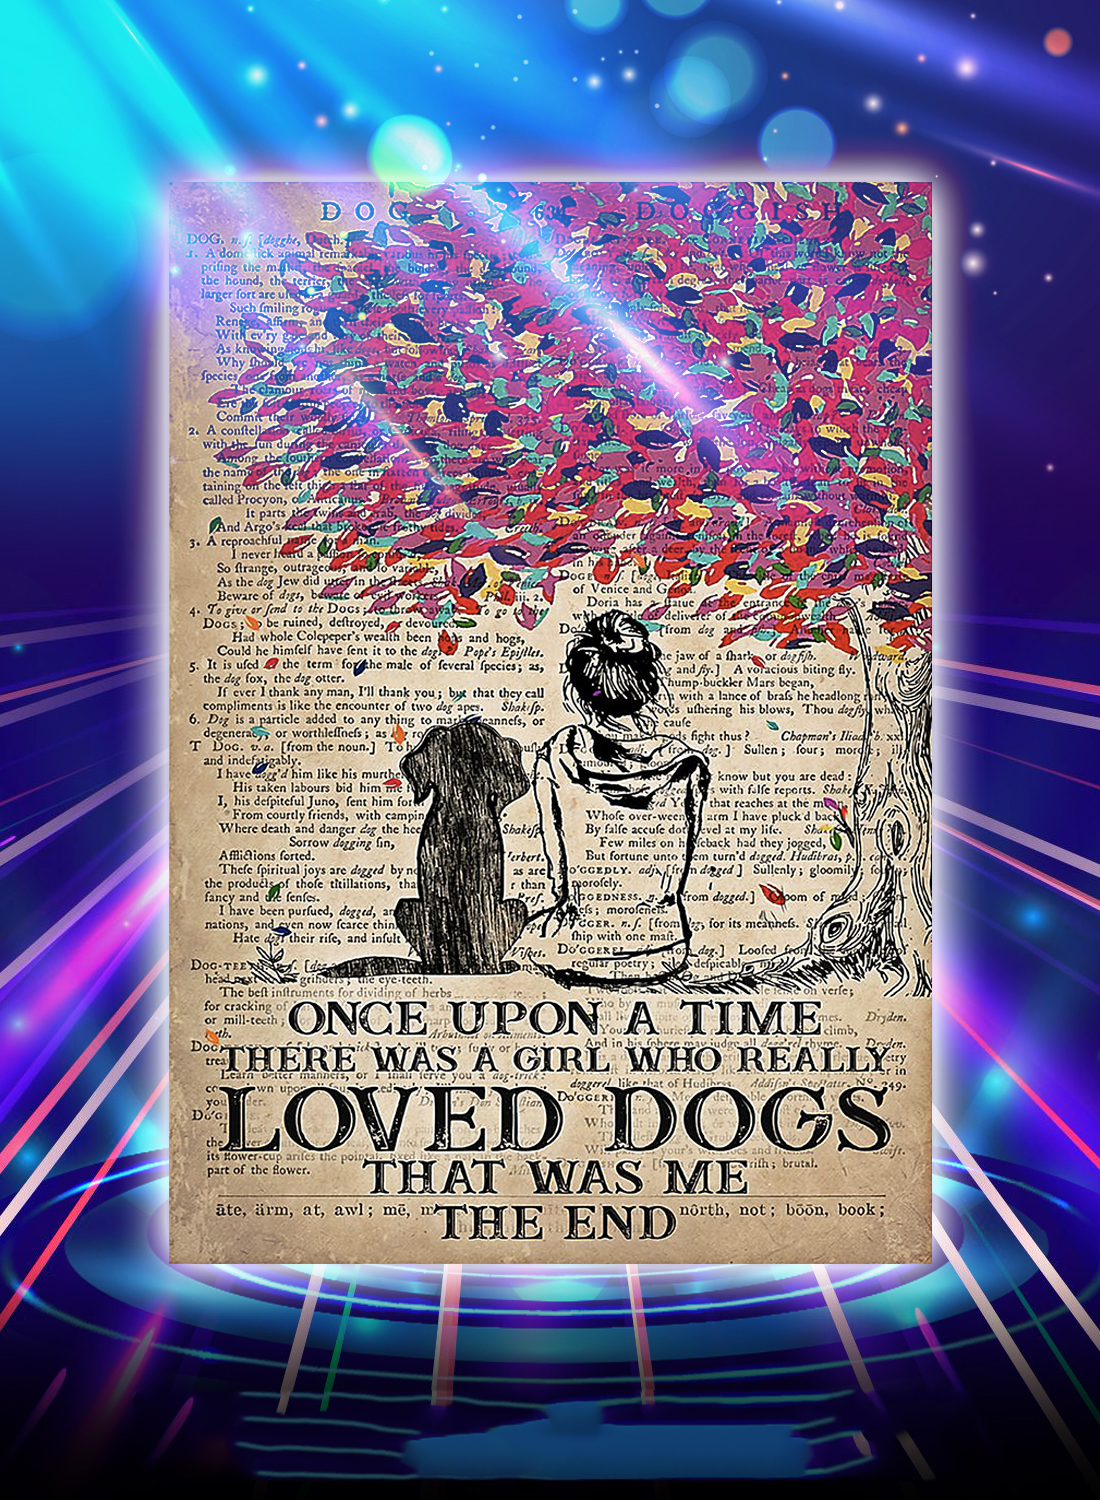 Once upon a time there was a girl who really loved dogs poster - A4